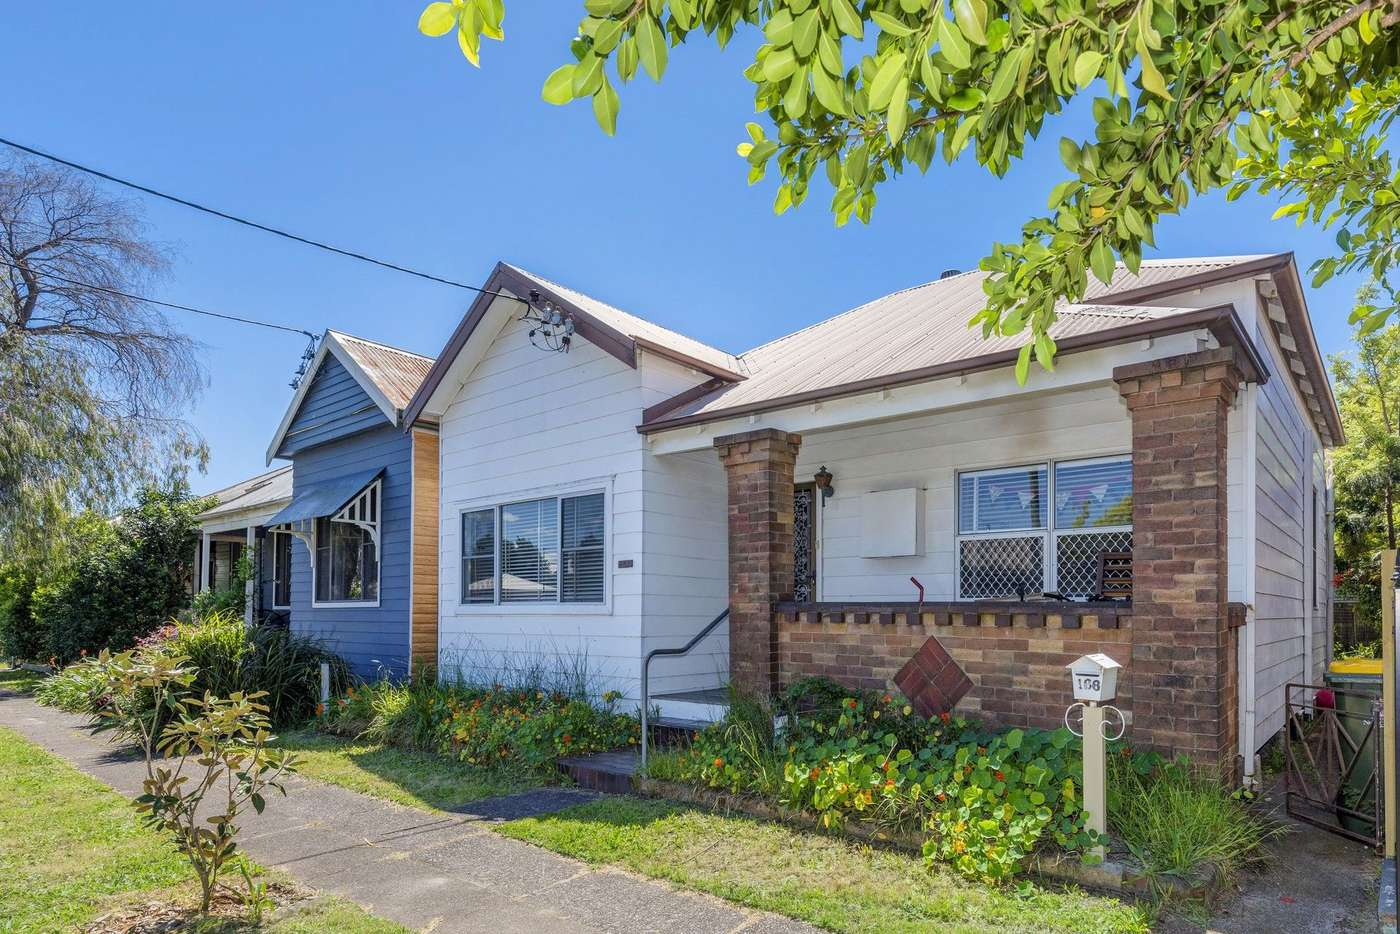 Main view of Homely house listing, 166 Lindsay Street, Hamilton NSW 2303